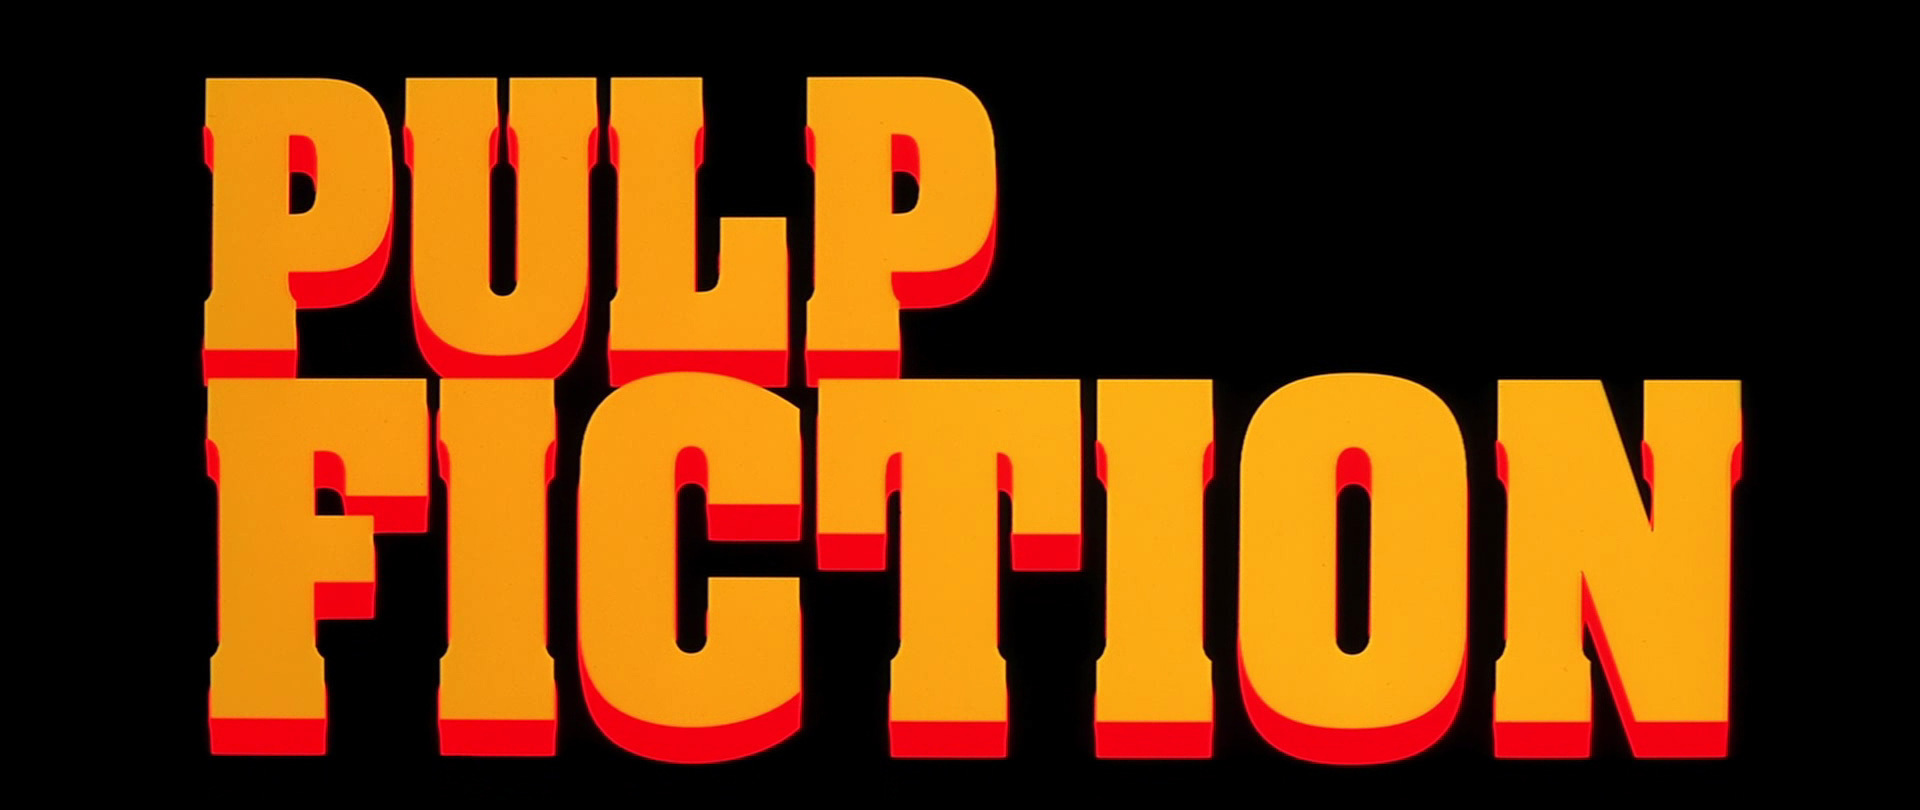 Pulp Fiction images Pulp Fiction HD wallpaper and background photos ... Fiction